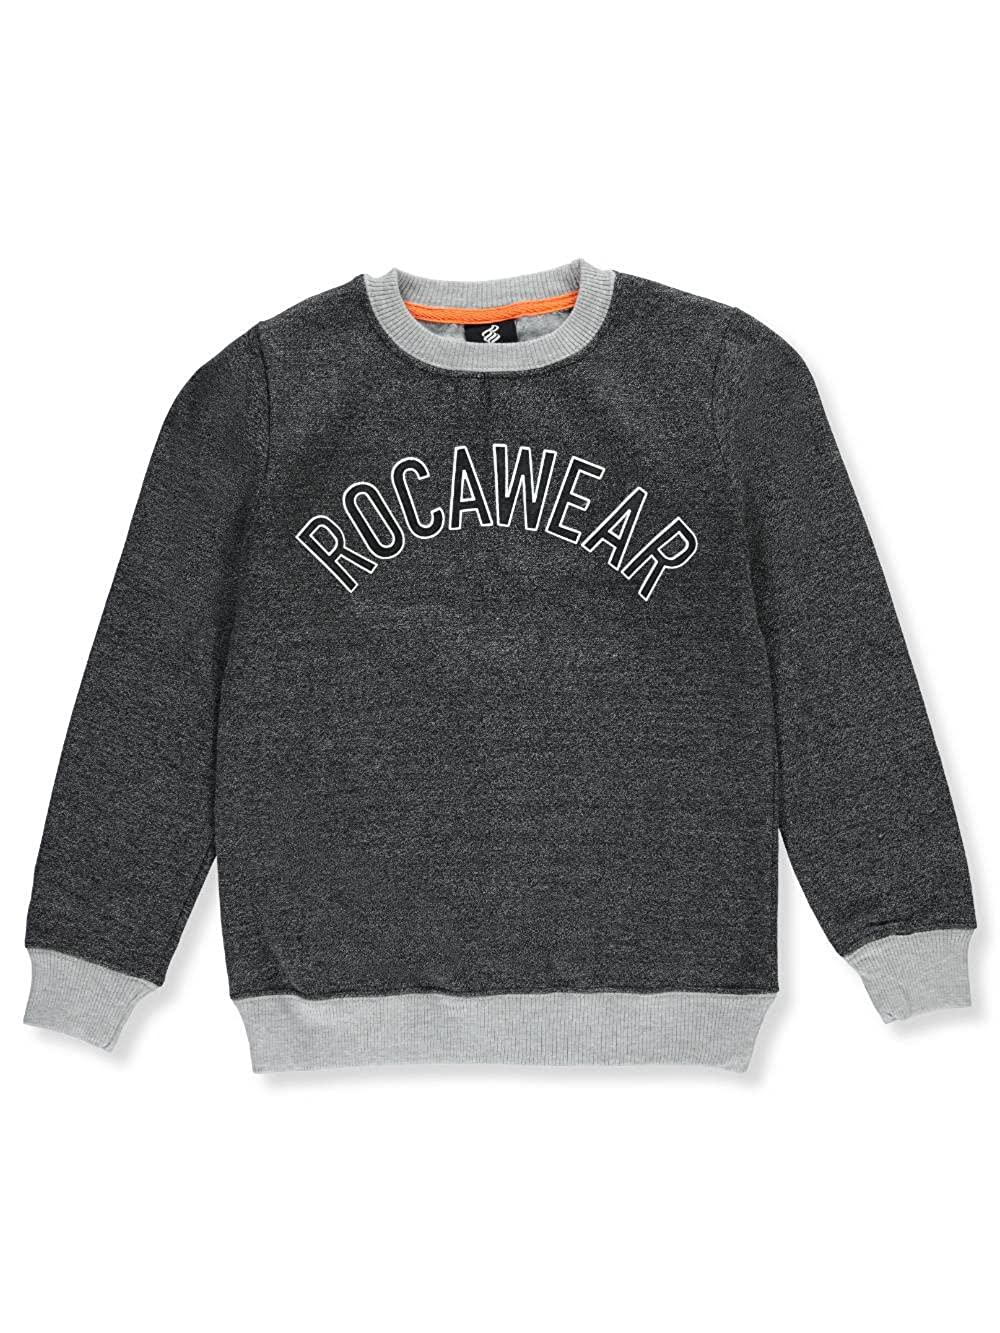 Rocawear Boys' Fleece Sweatshirt